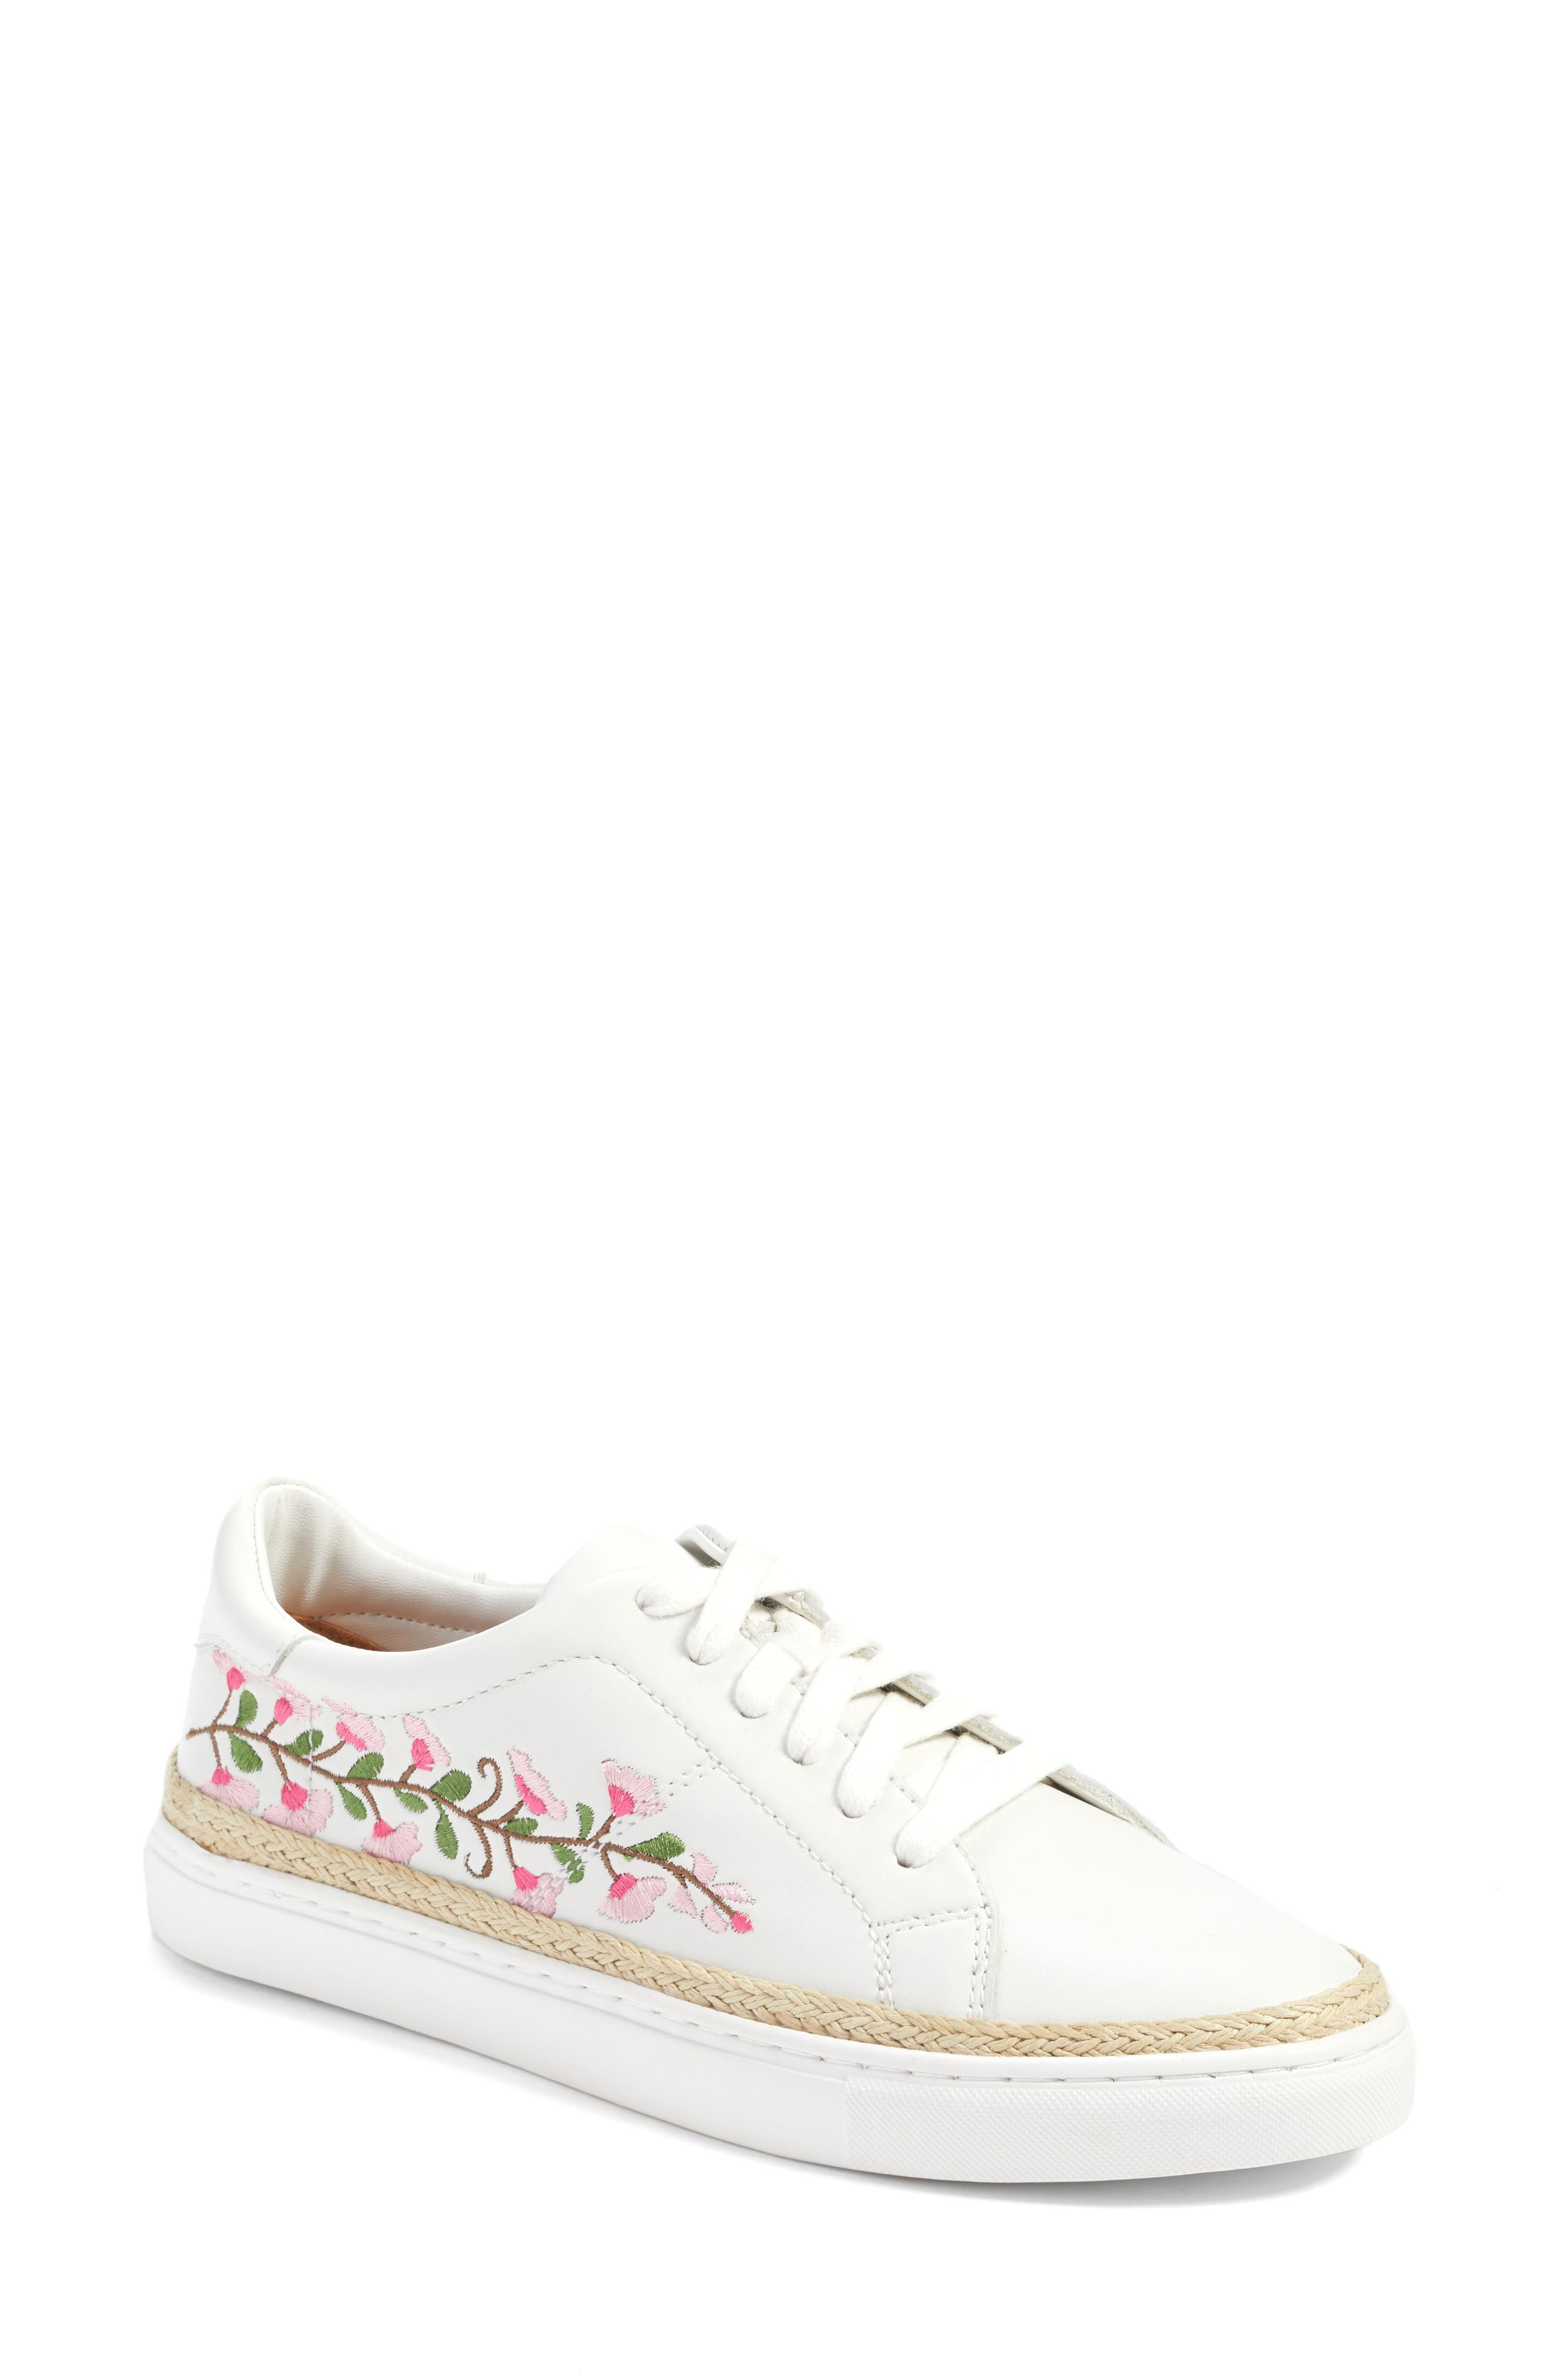 Perry Lea Embroidered Sneaker,                             Main thumbnail 1, color,                             100